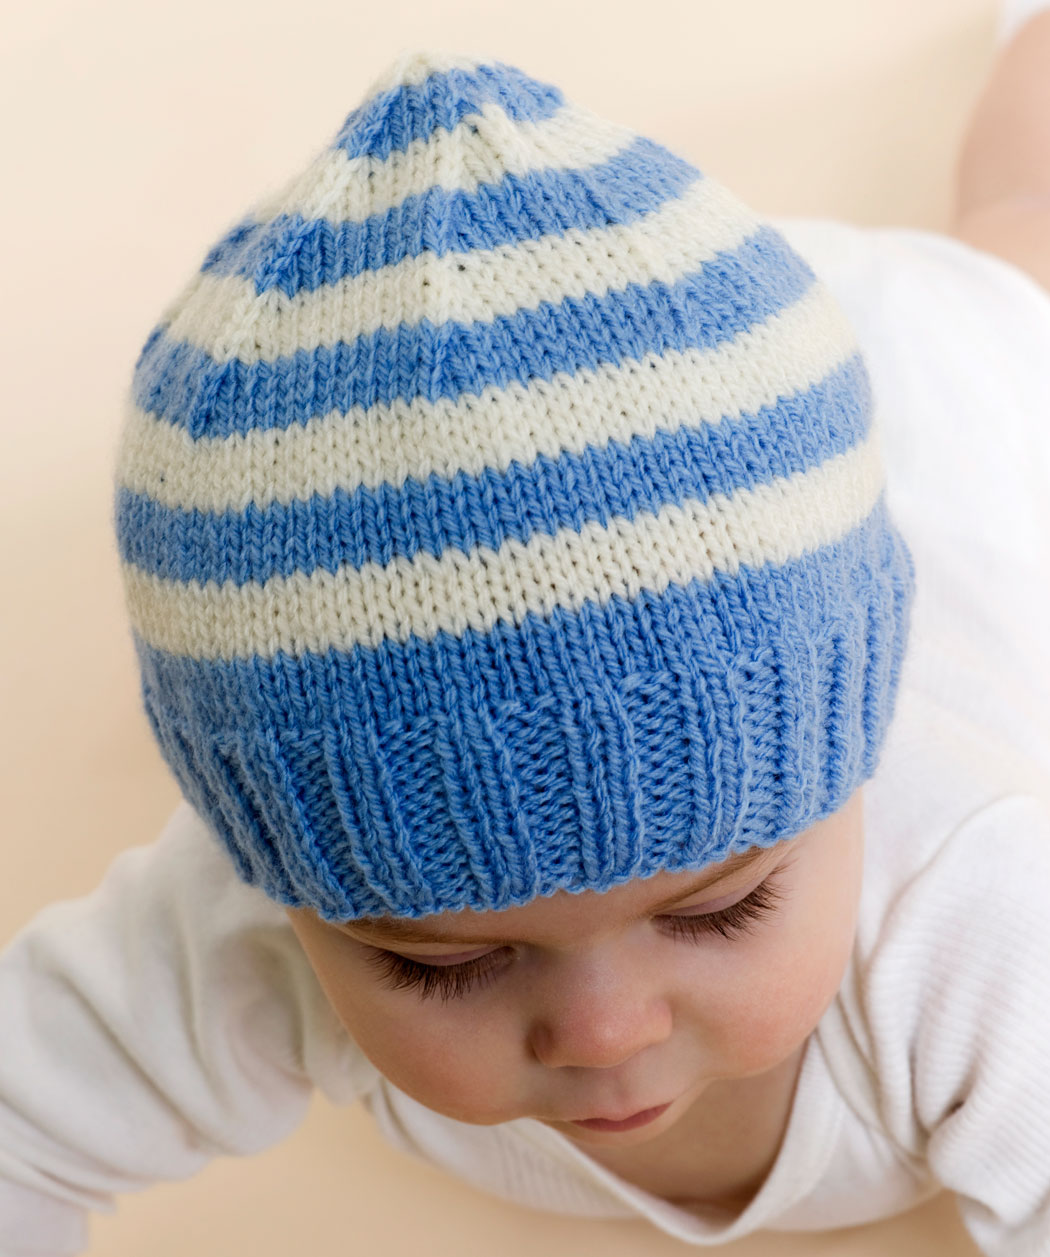 Knitting Pattern For Childrens Hats : Knitting Hats   Tag Hats